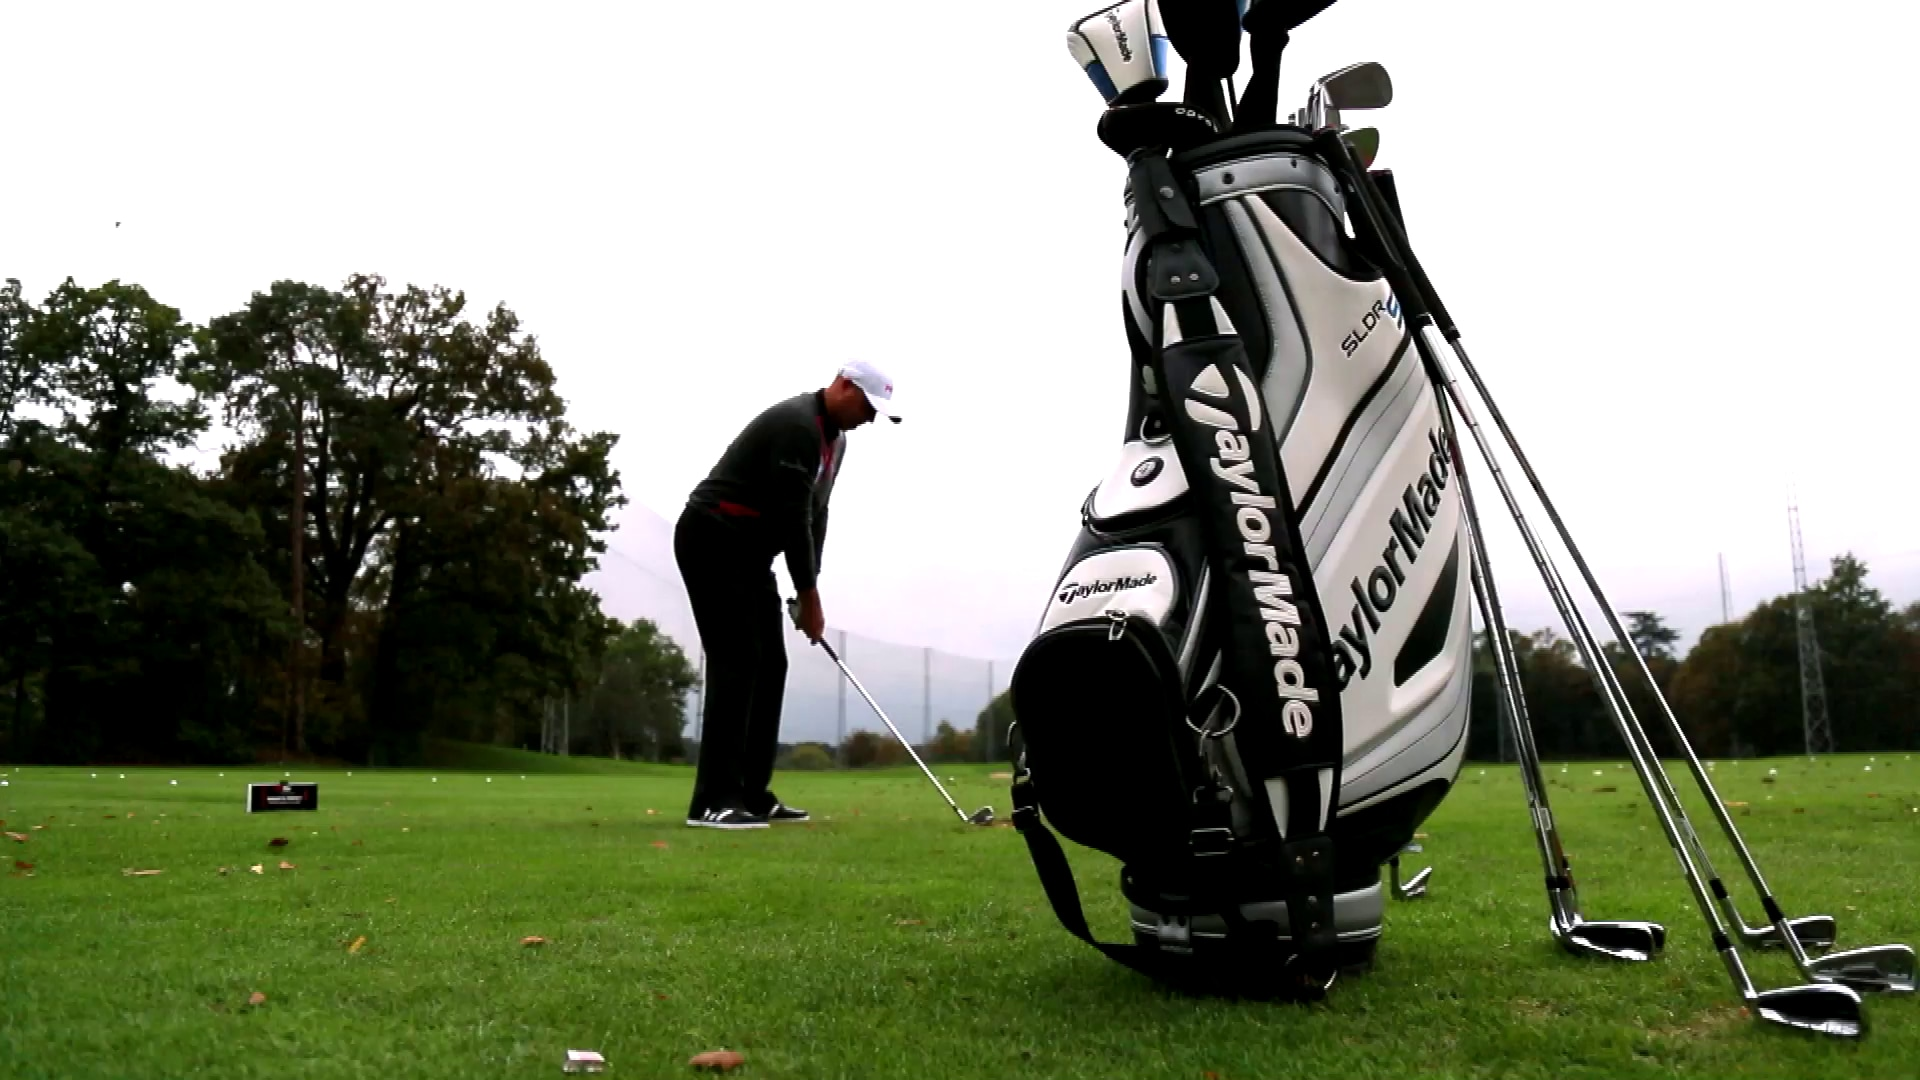 TaylorMade Launches RSi Irons   Golf Channel  TaylorMade Laun...